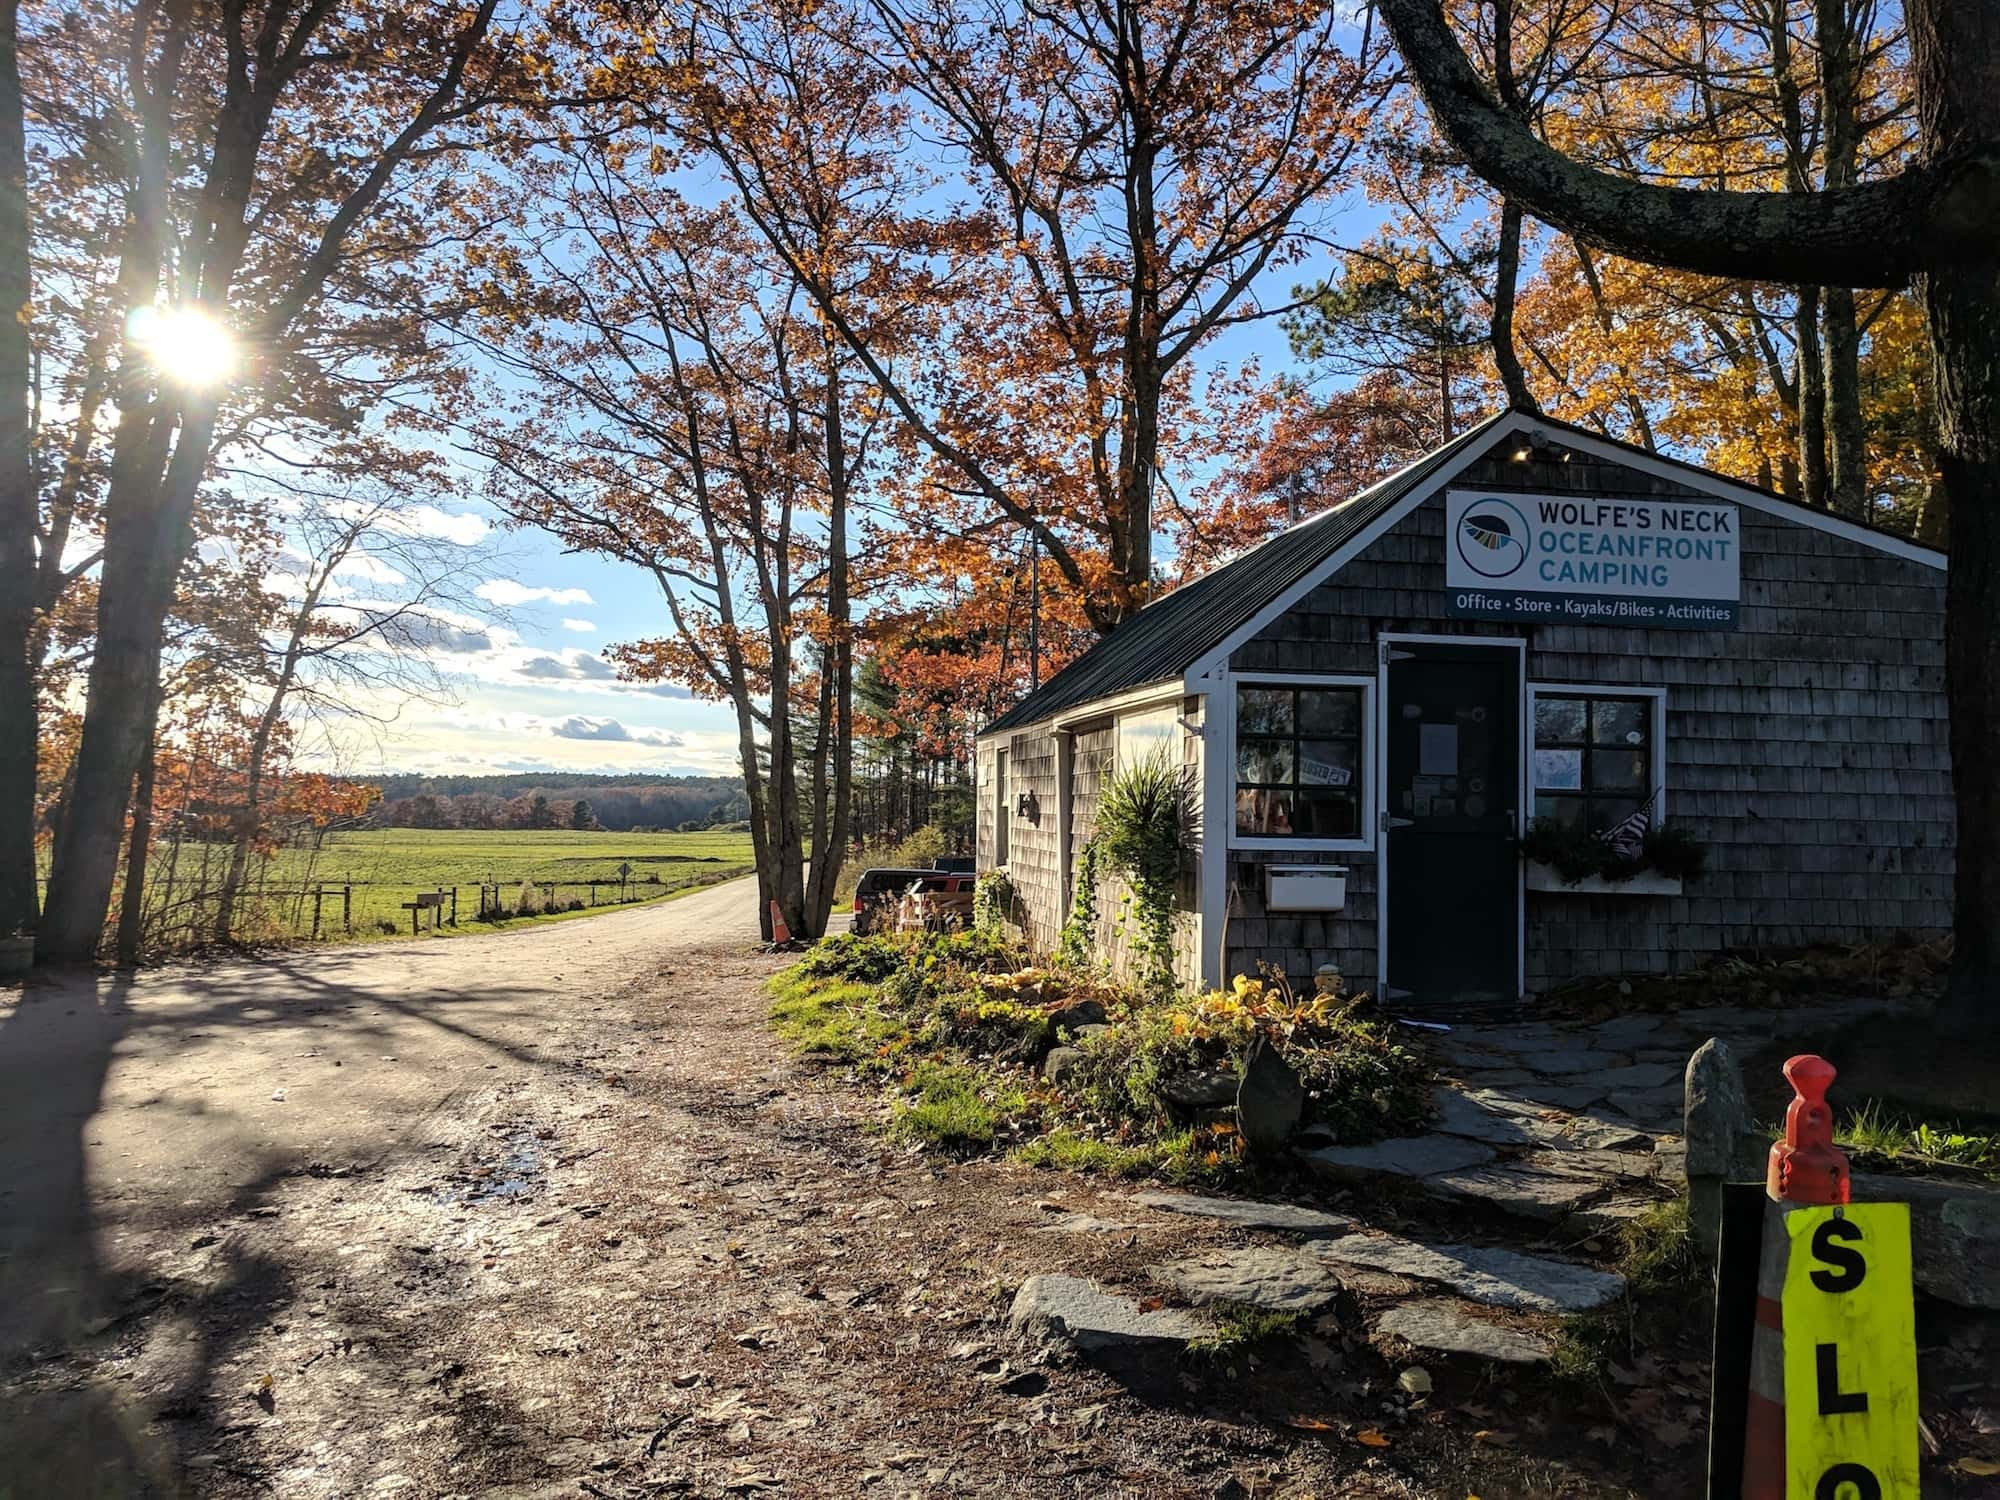 Here's what you need to know to plan a camping trip to Wolfe's Neck State Farm and Oceanfront Campground near Freeport, Maine.